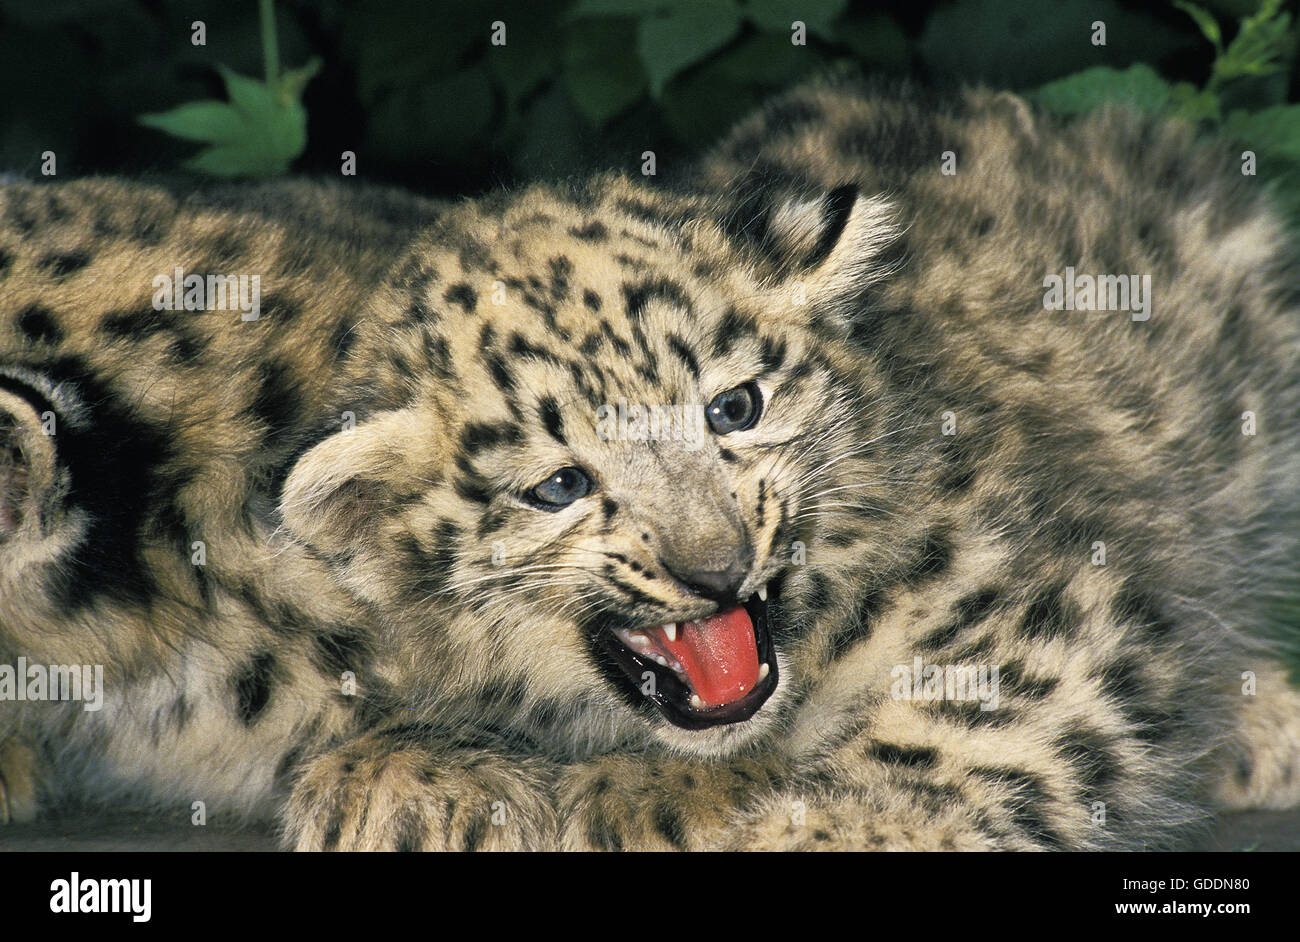 Snow Leopard or Ounce, uncia uncia, Cub with Open Mouth - Stock Image